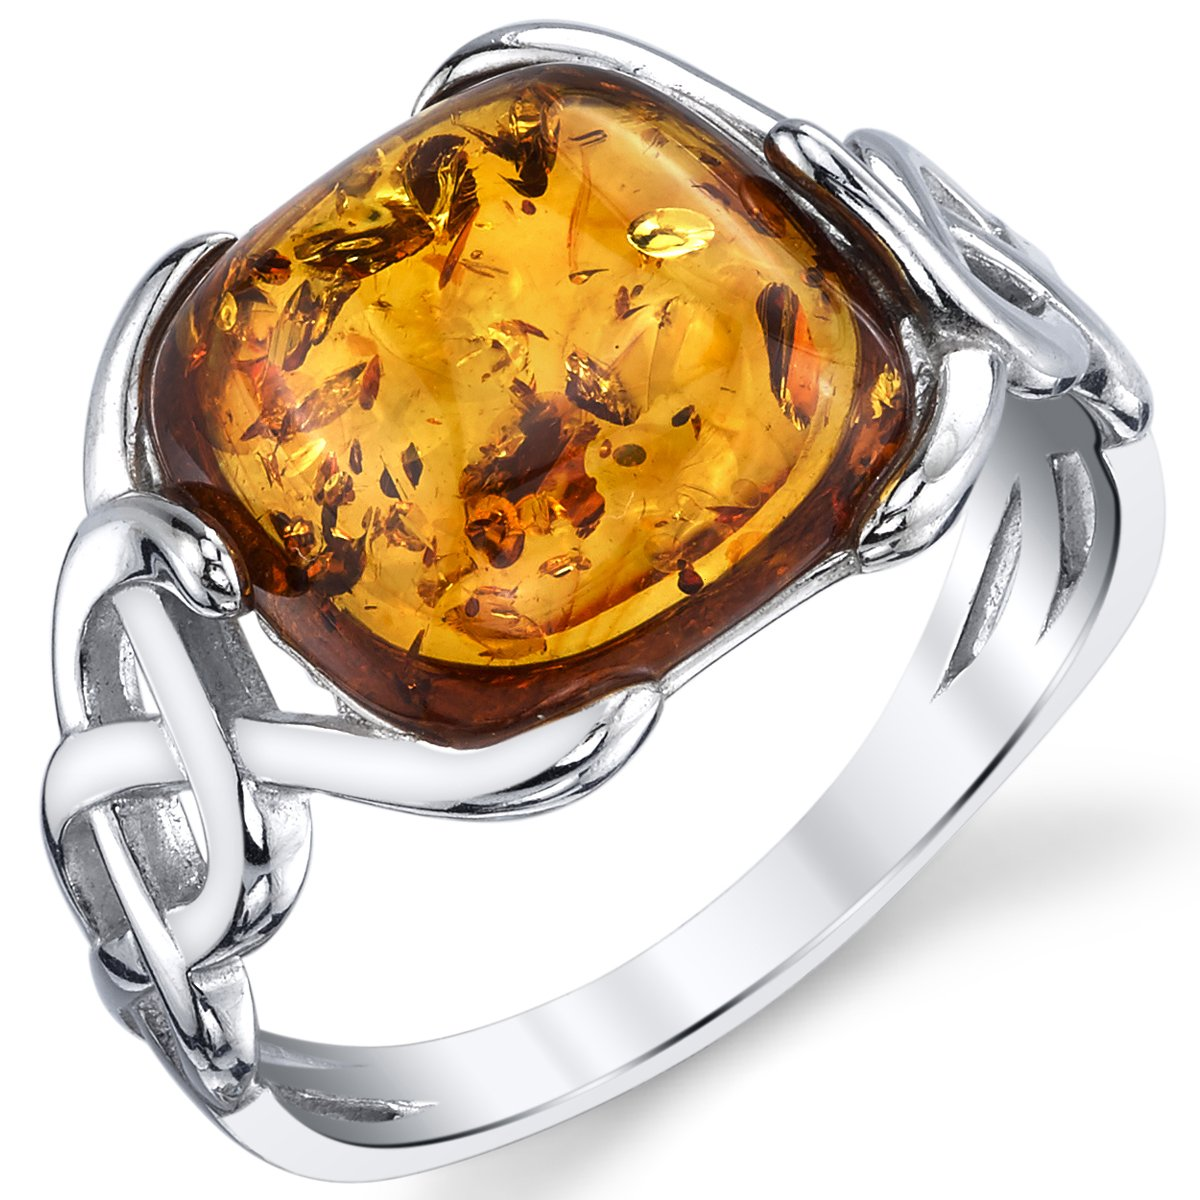 Sterling Silver Baltic Amber Irish Celtic Design Ring with Cognac Color Large Cushion Shape Stone Sizes 5 to 9